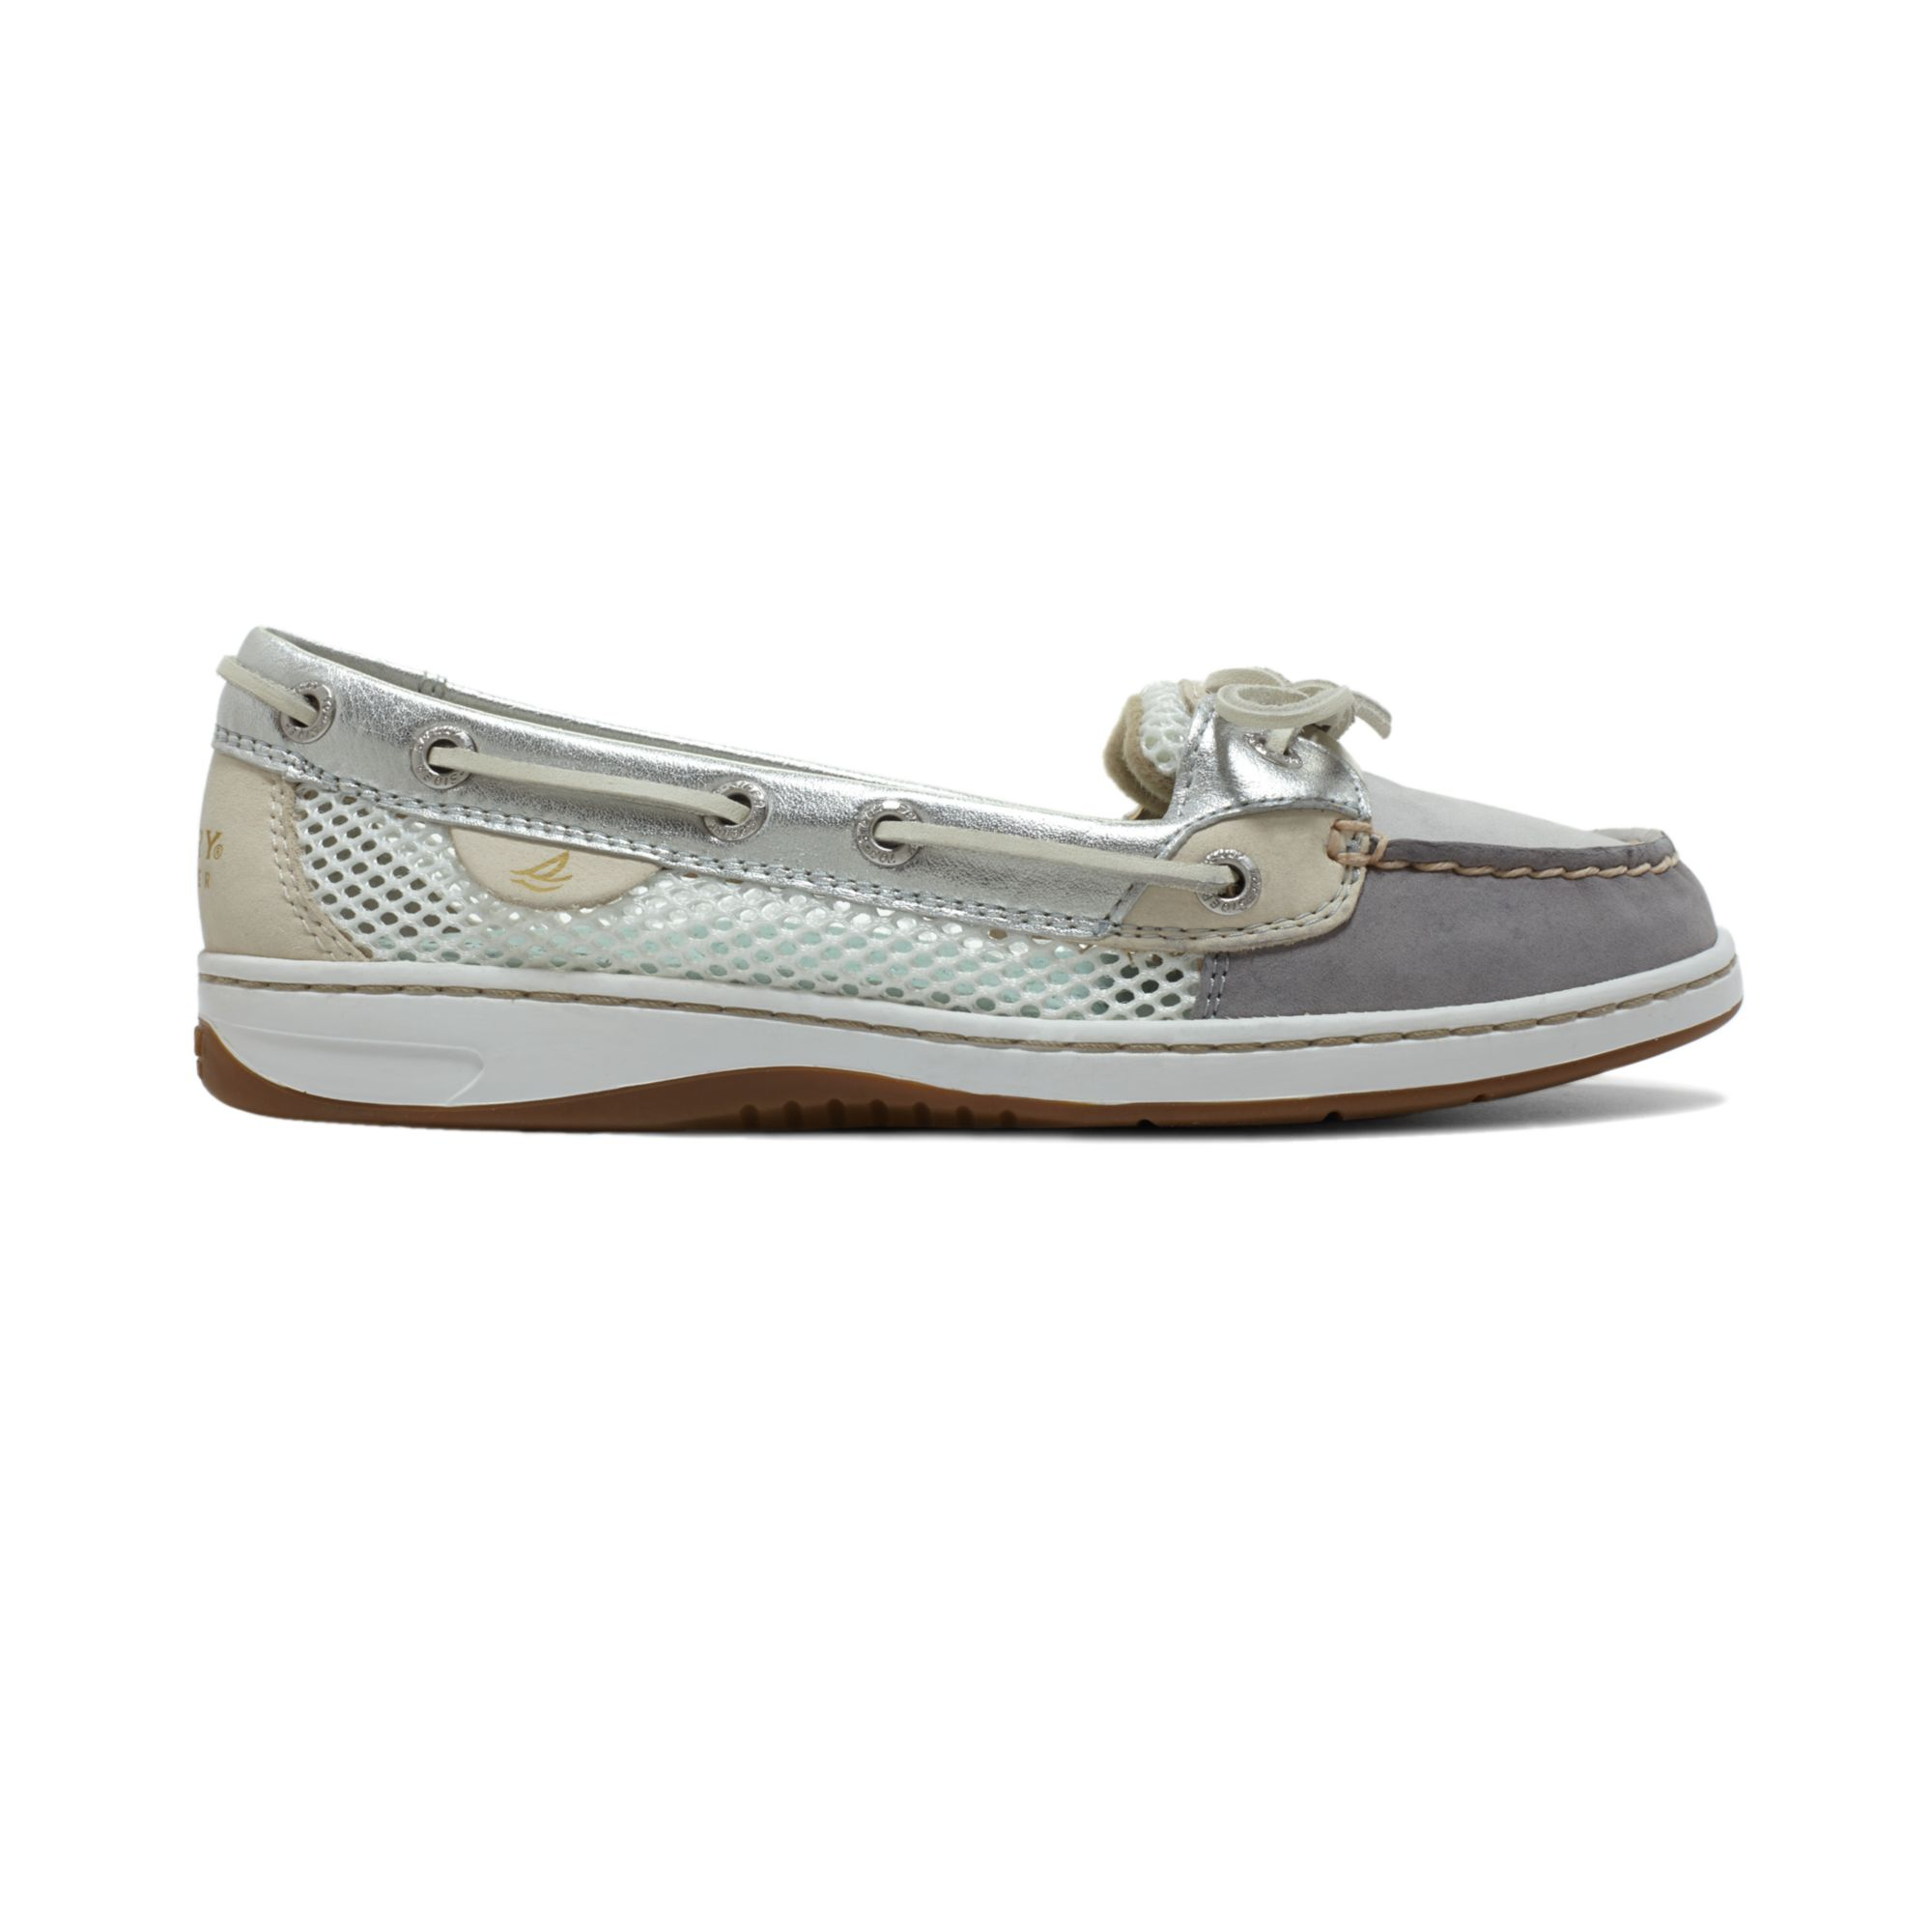 Aldo Boat Shoes Womens